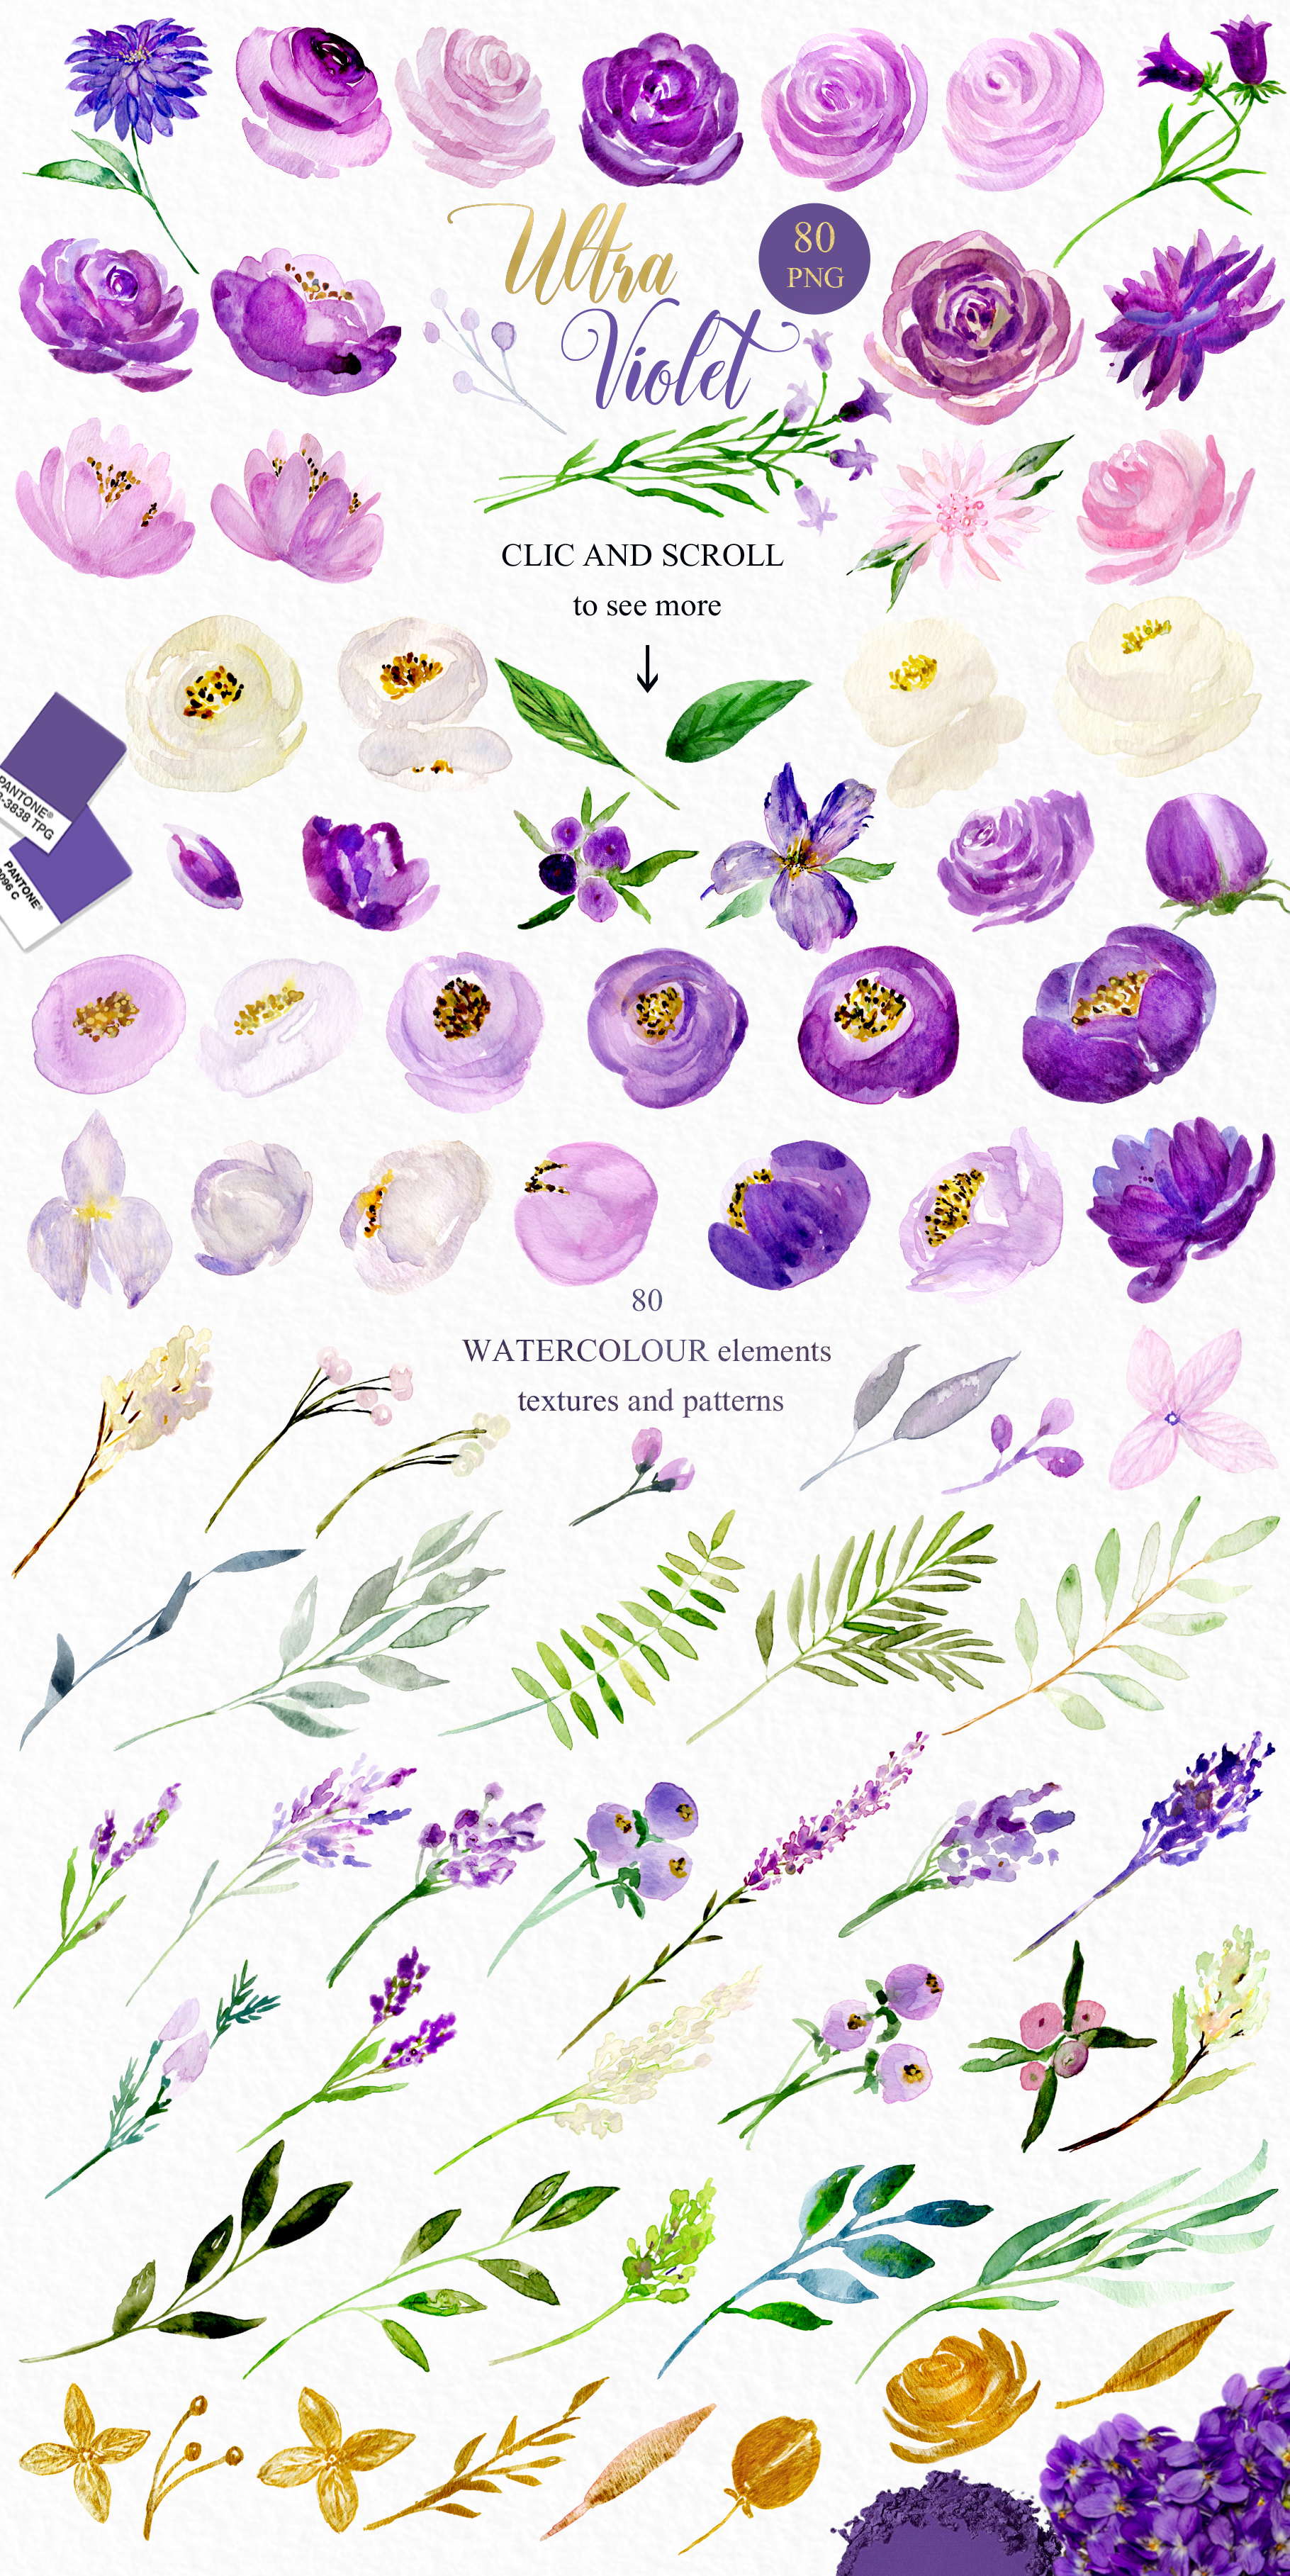 Ultra violet watercolor flowers example image 4